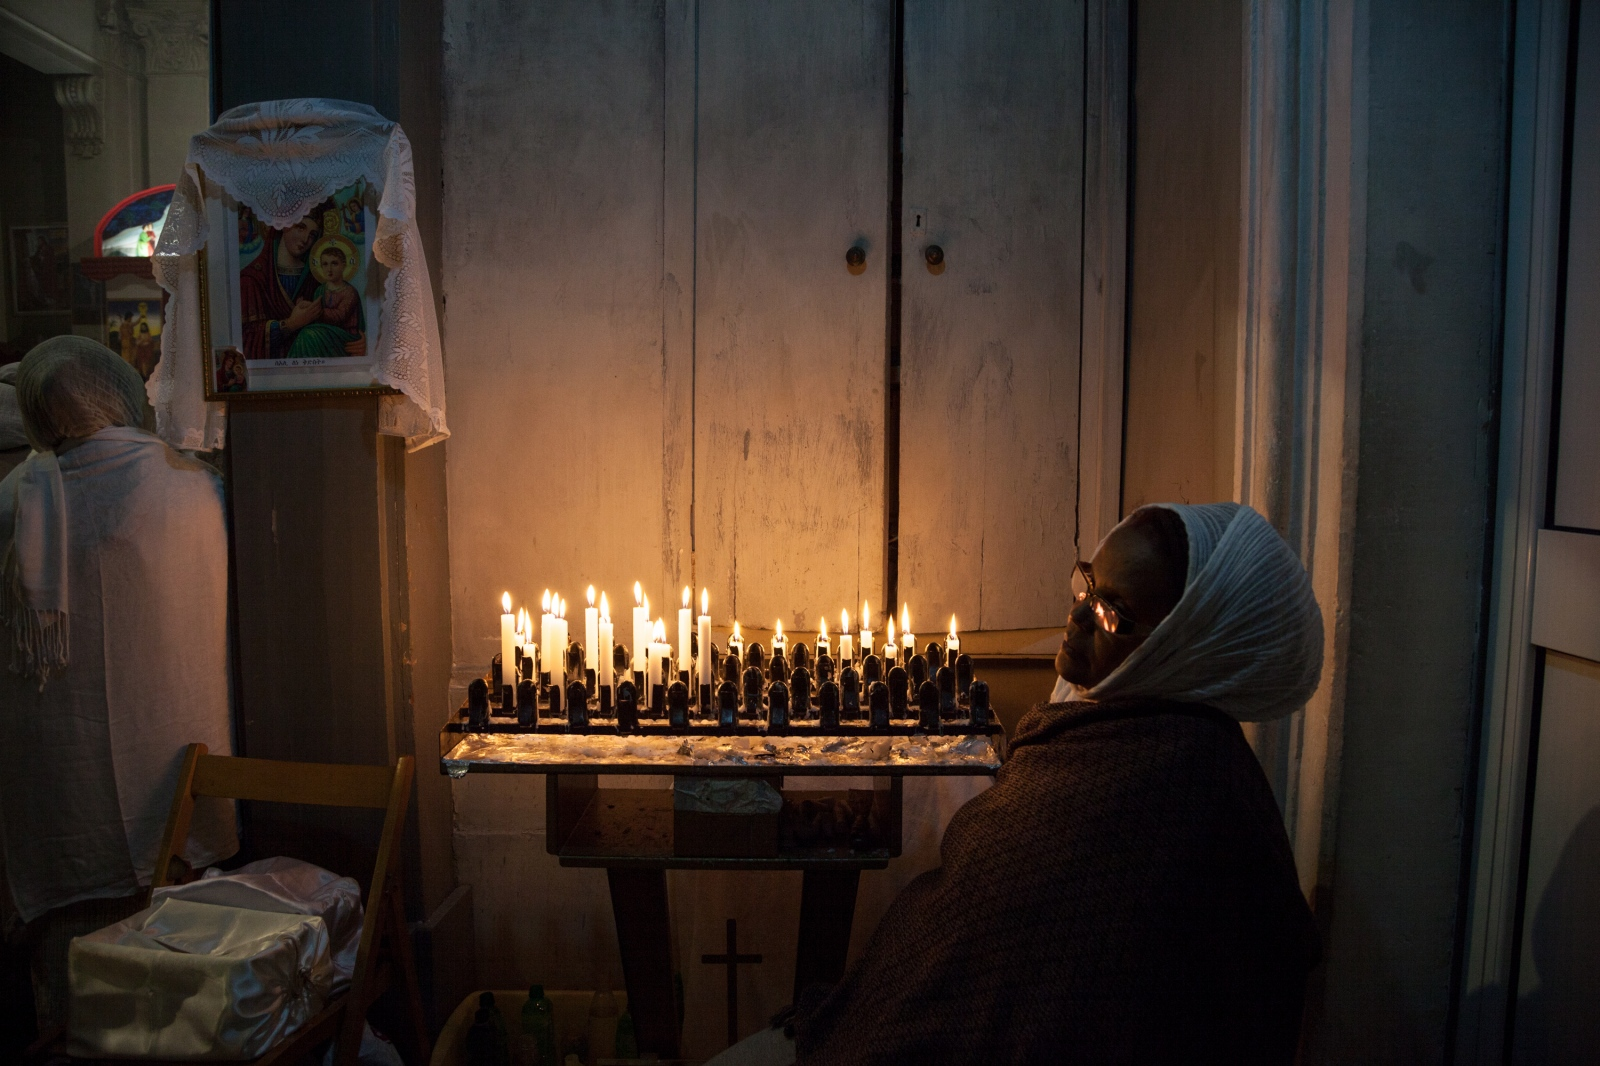 Inside the Eritrean Orthodox Tewahdo Church in Piazza San Salvatore in Campo, downtown Rome, a woman takes part to the celebration for Orthodox Christmas Day.